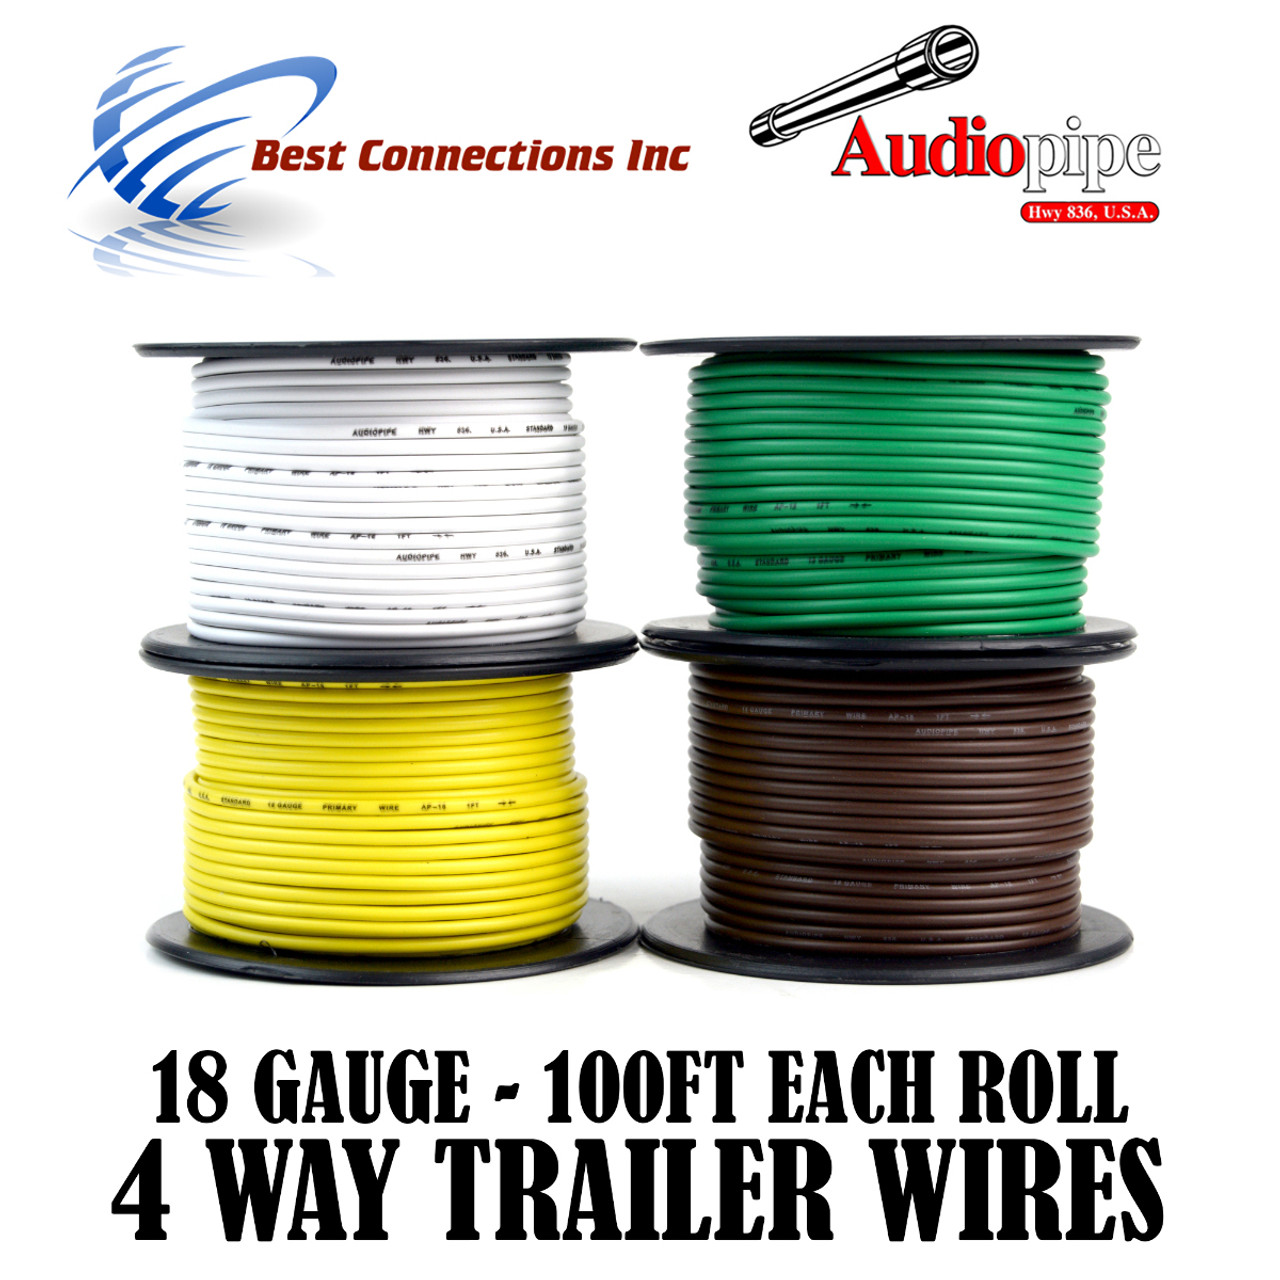 Trailer Wire Light Cable for Harness 4 Way Cord 18 Gauge - 100ft ...